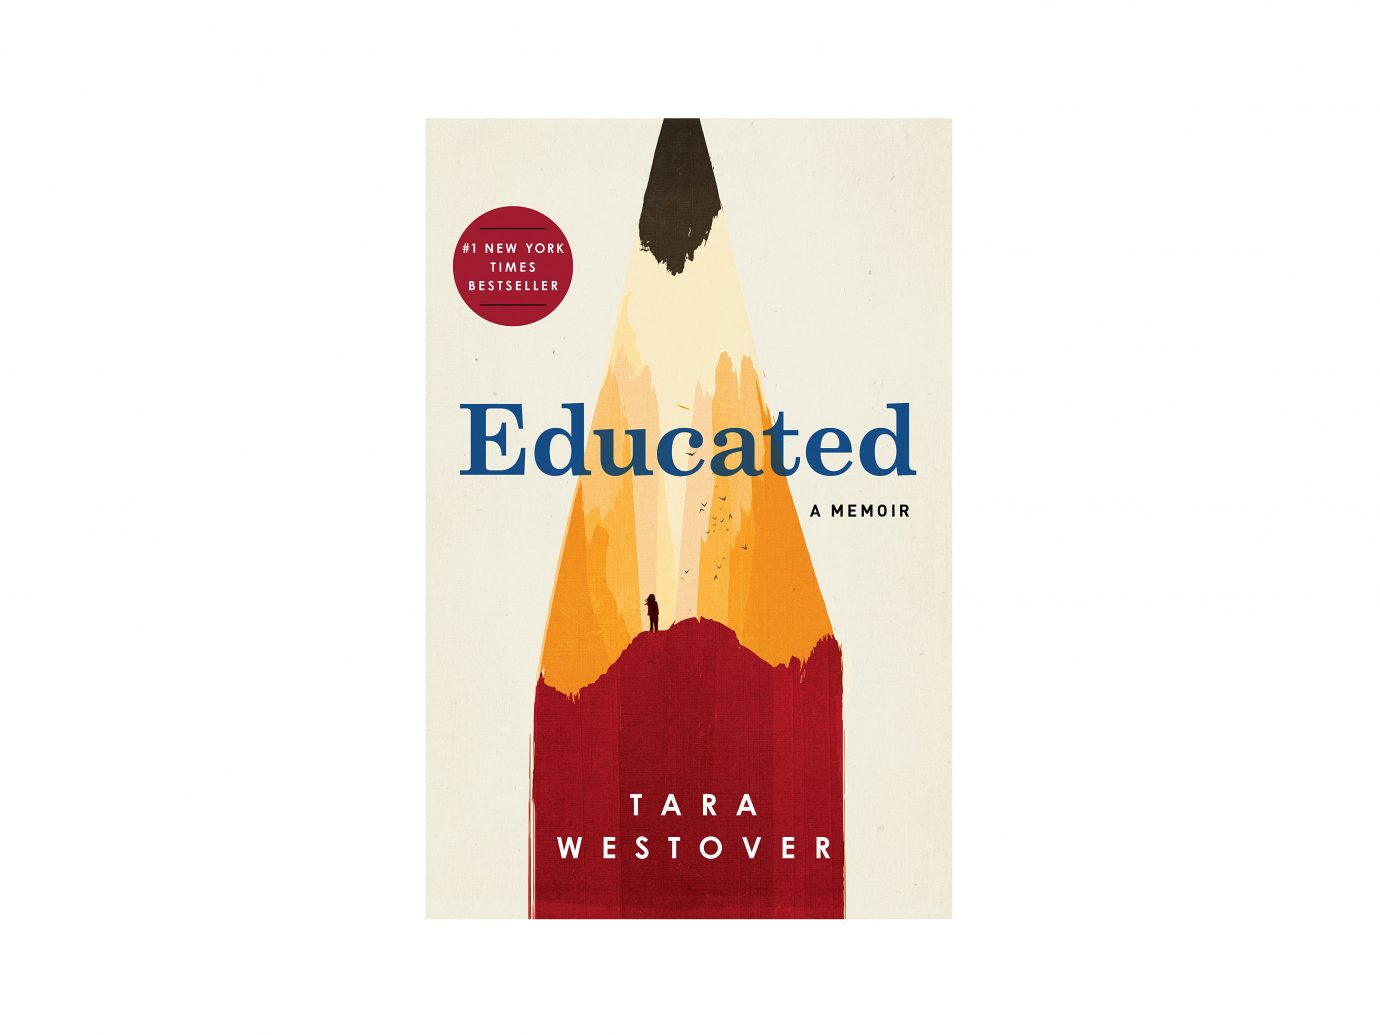 Book: Educated by Tara Westover